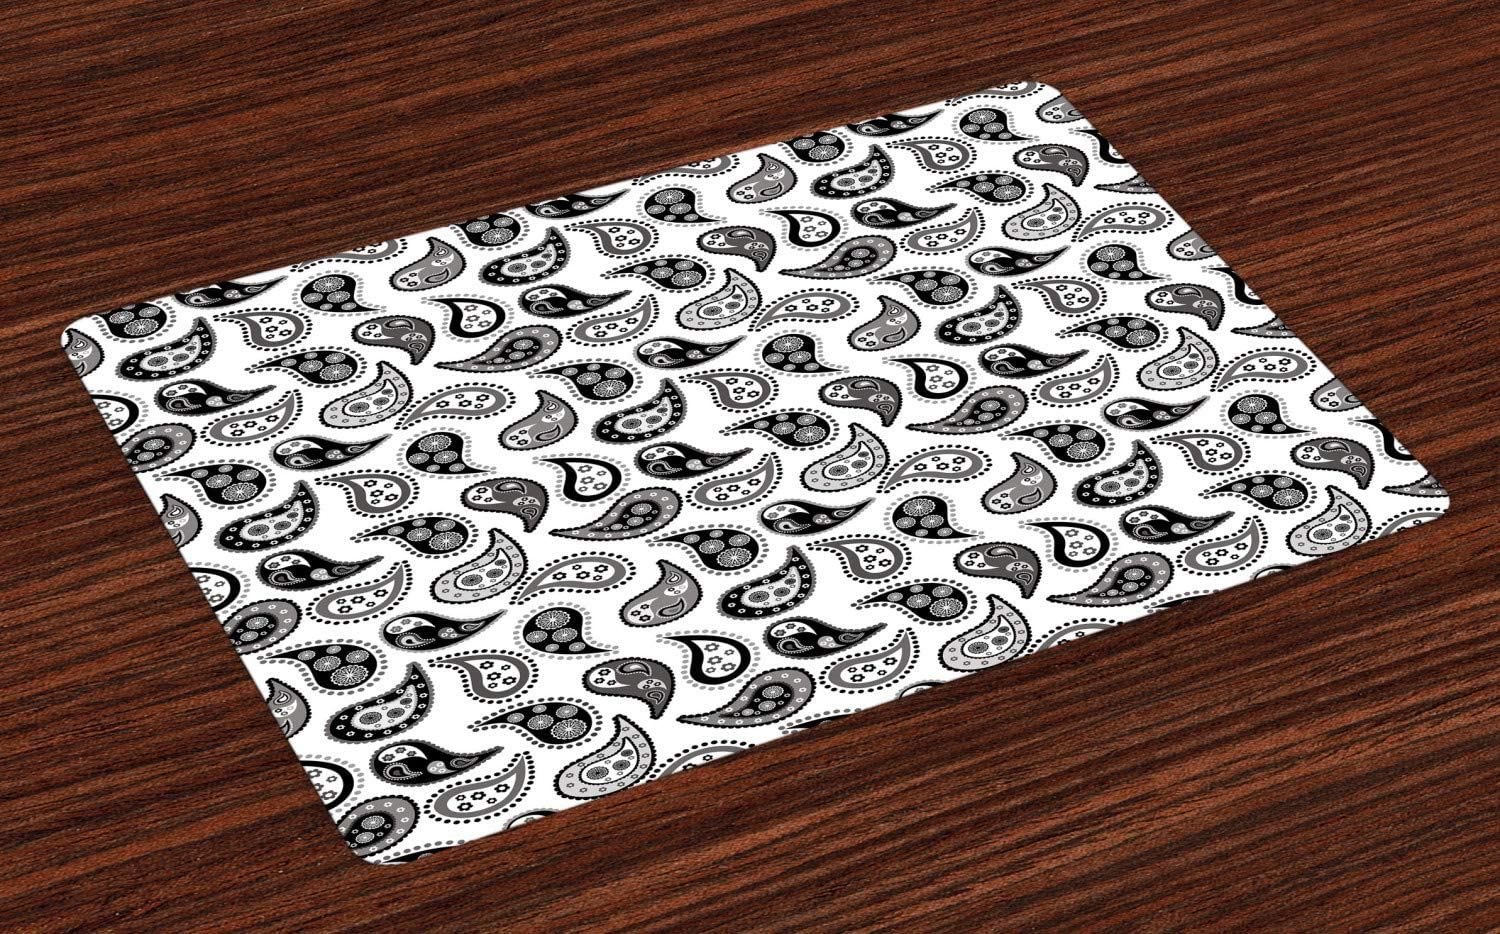 Ambesonne Paisley Place Mats Set of 4, Design in Different Types with Flowers Circles and Tiny Teadrops Detailed Art, Washable Fabric Placemats for Dining Room Kitchen Table Decor, Grey and Black